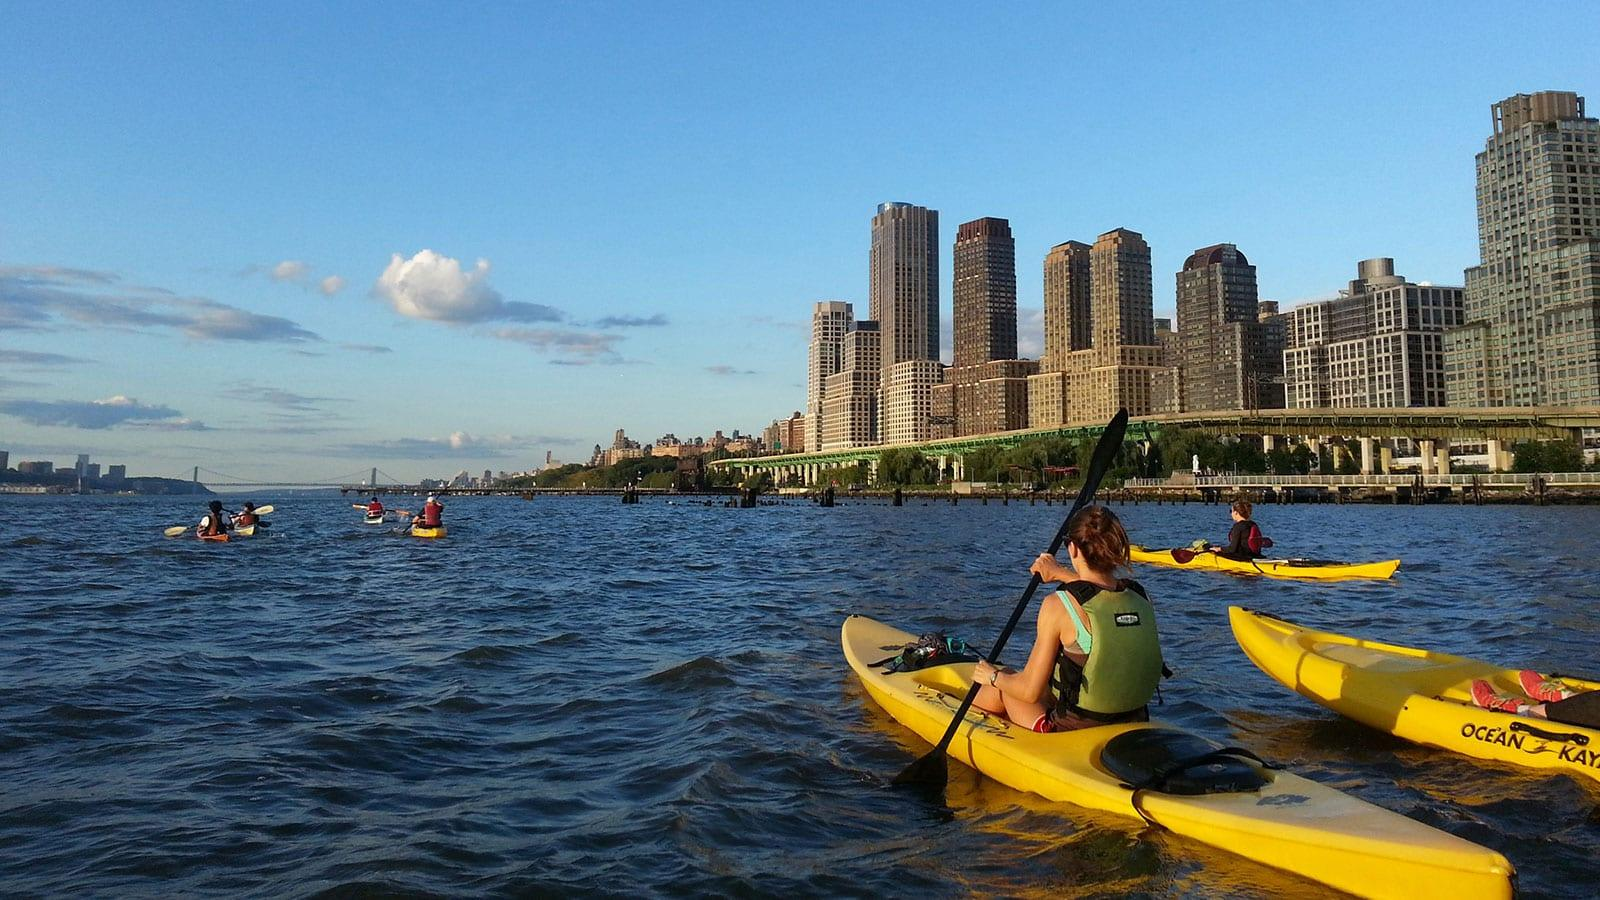 ᐅ Kayak Fahren In New York